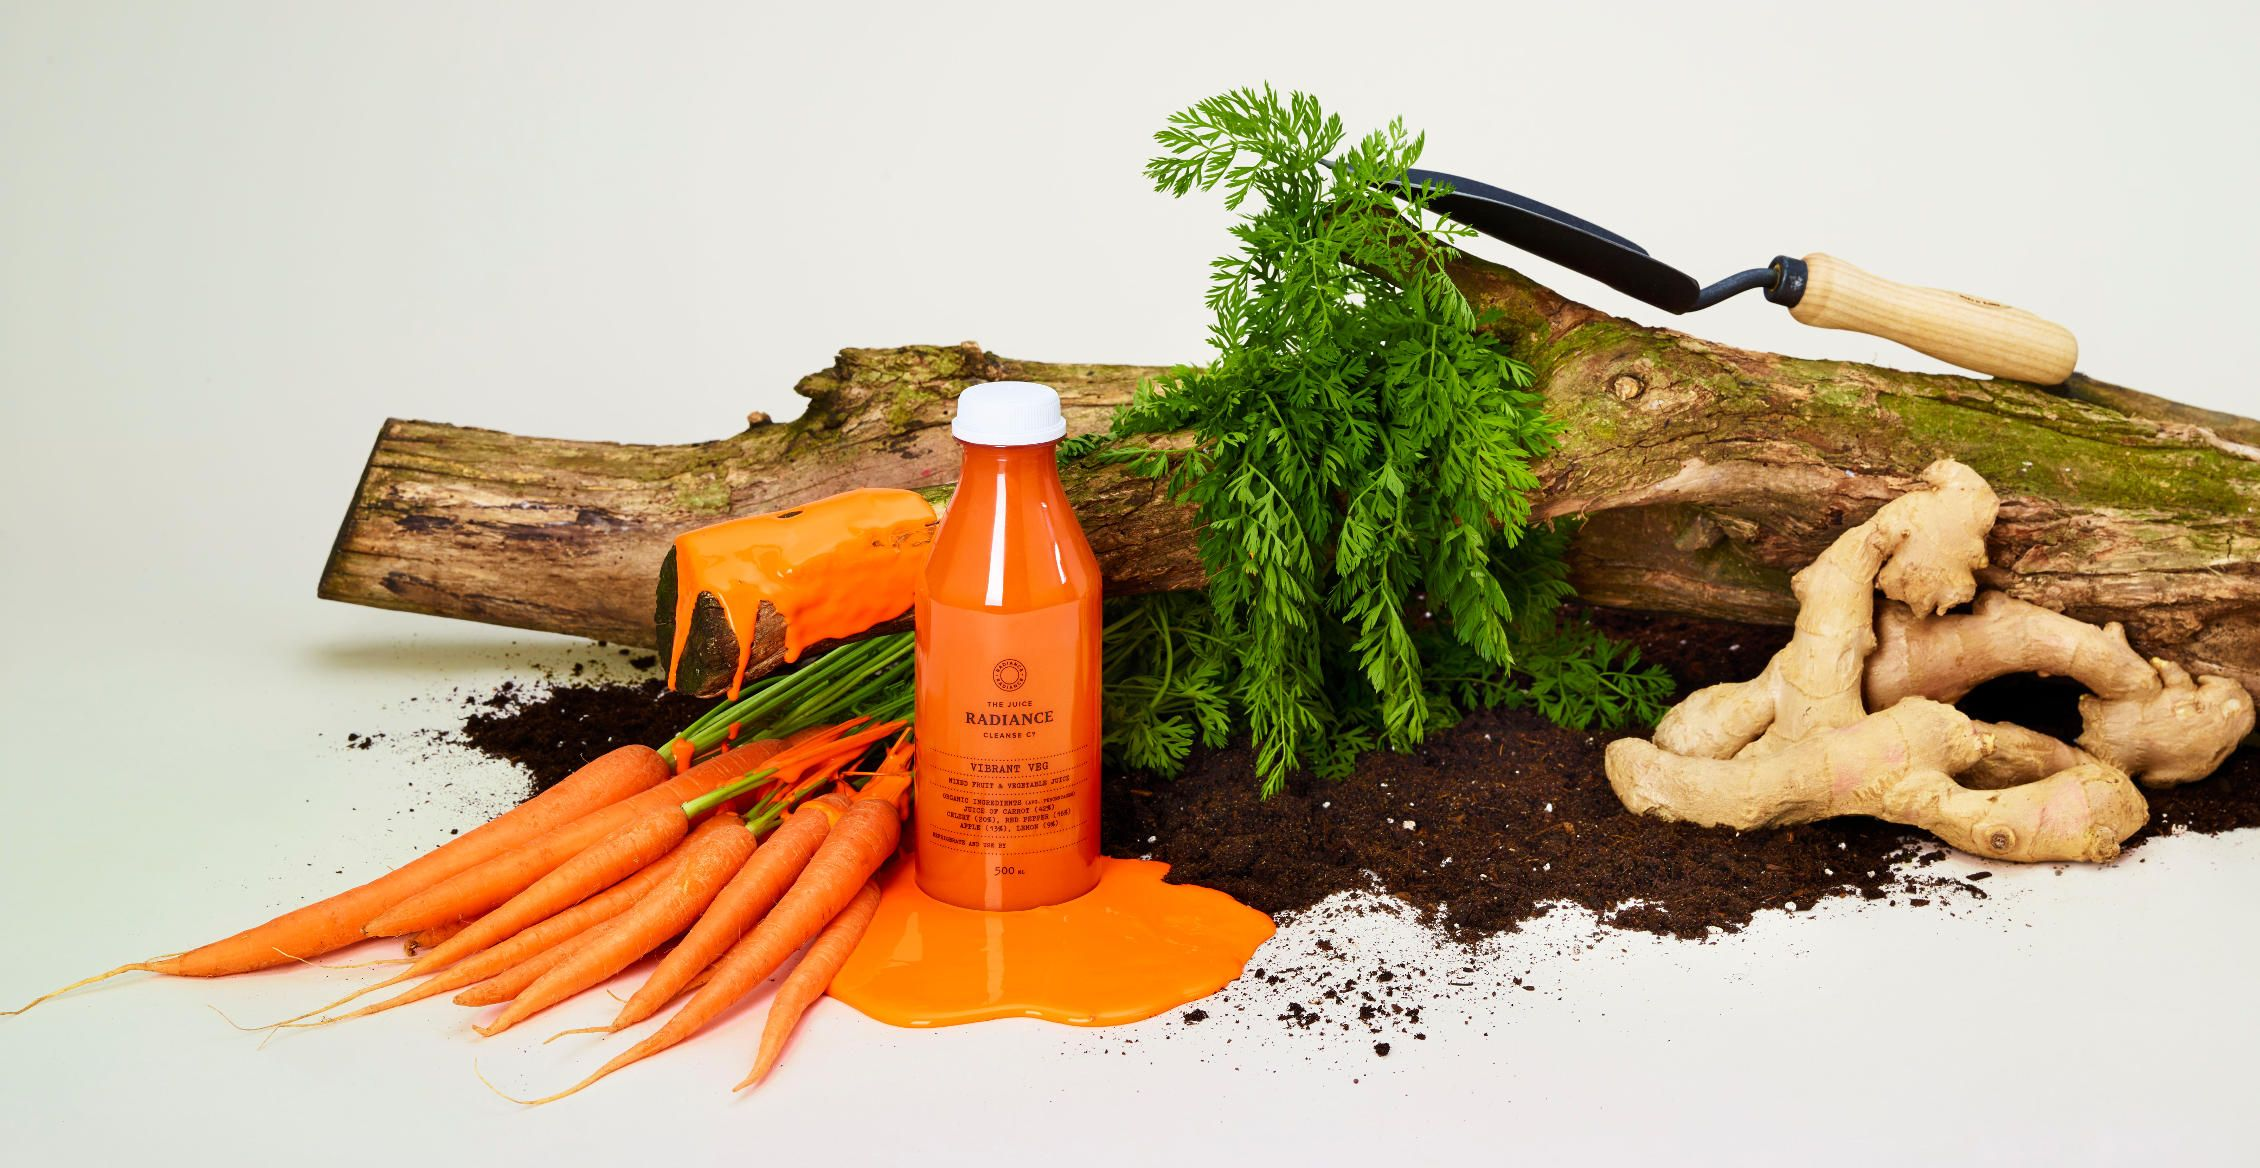 Radiance Cleanse | Organic Juice Detox Delivery